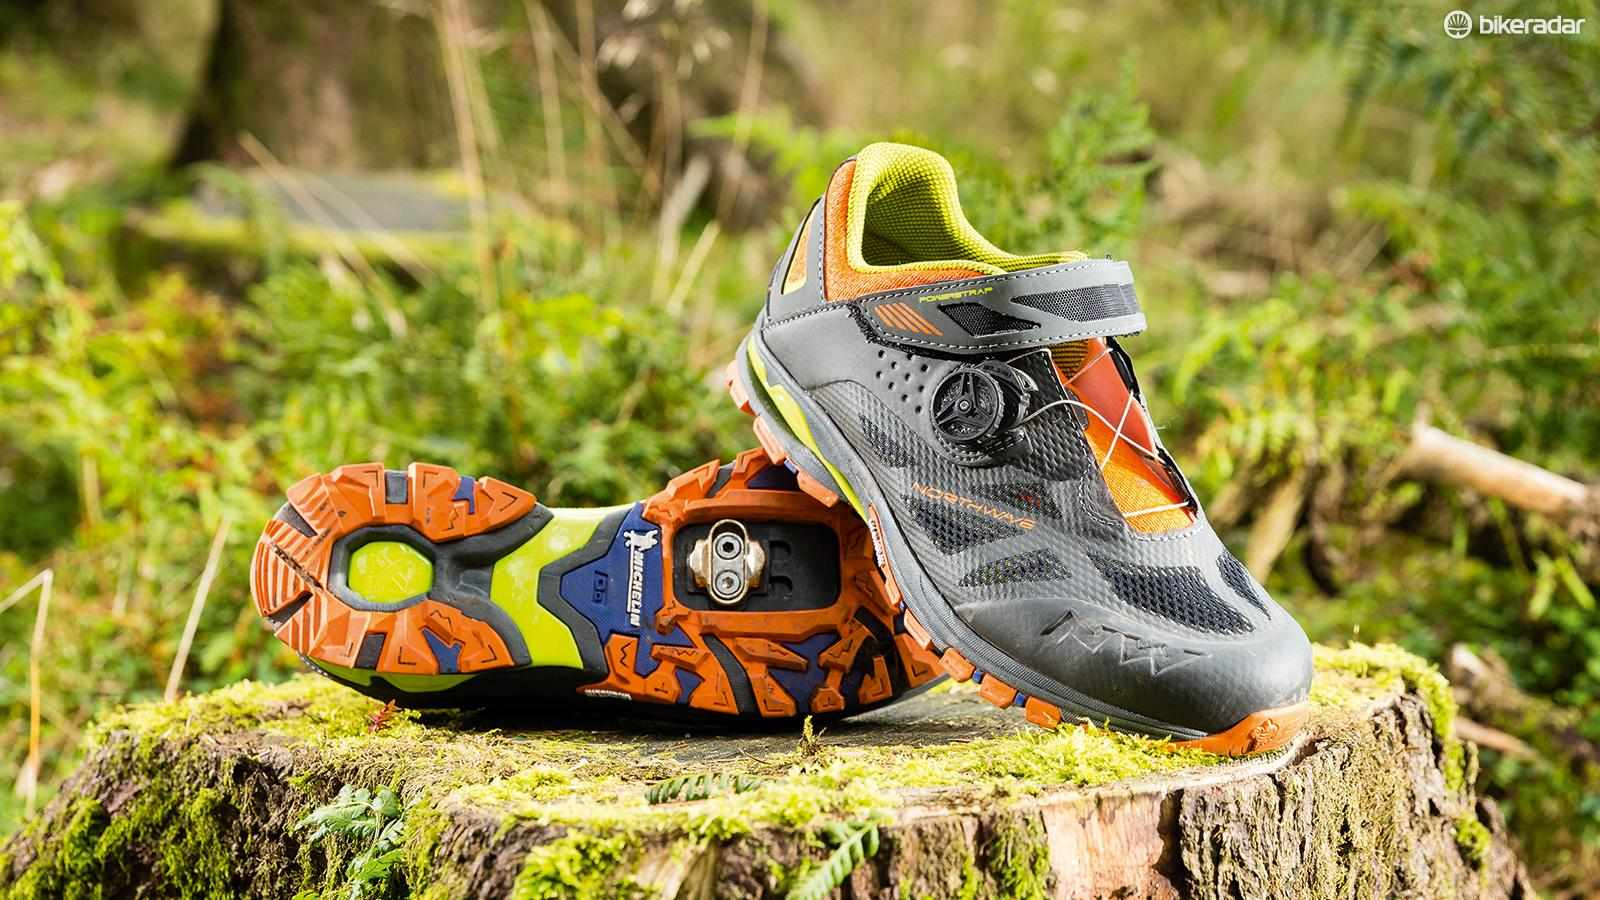 Northwave's Spider Plus 2 shoes are certainly distinctive